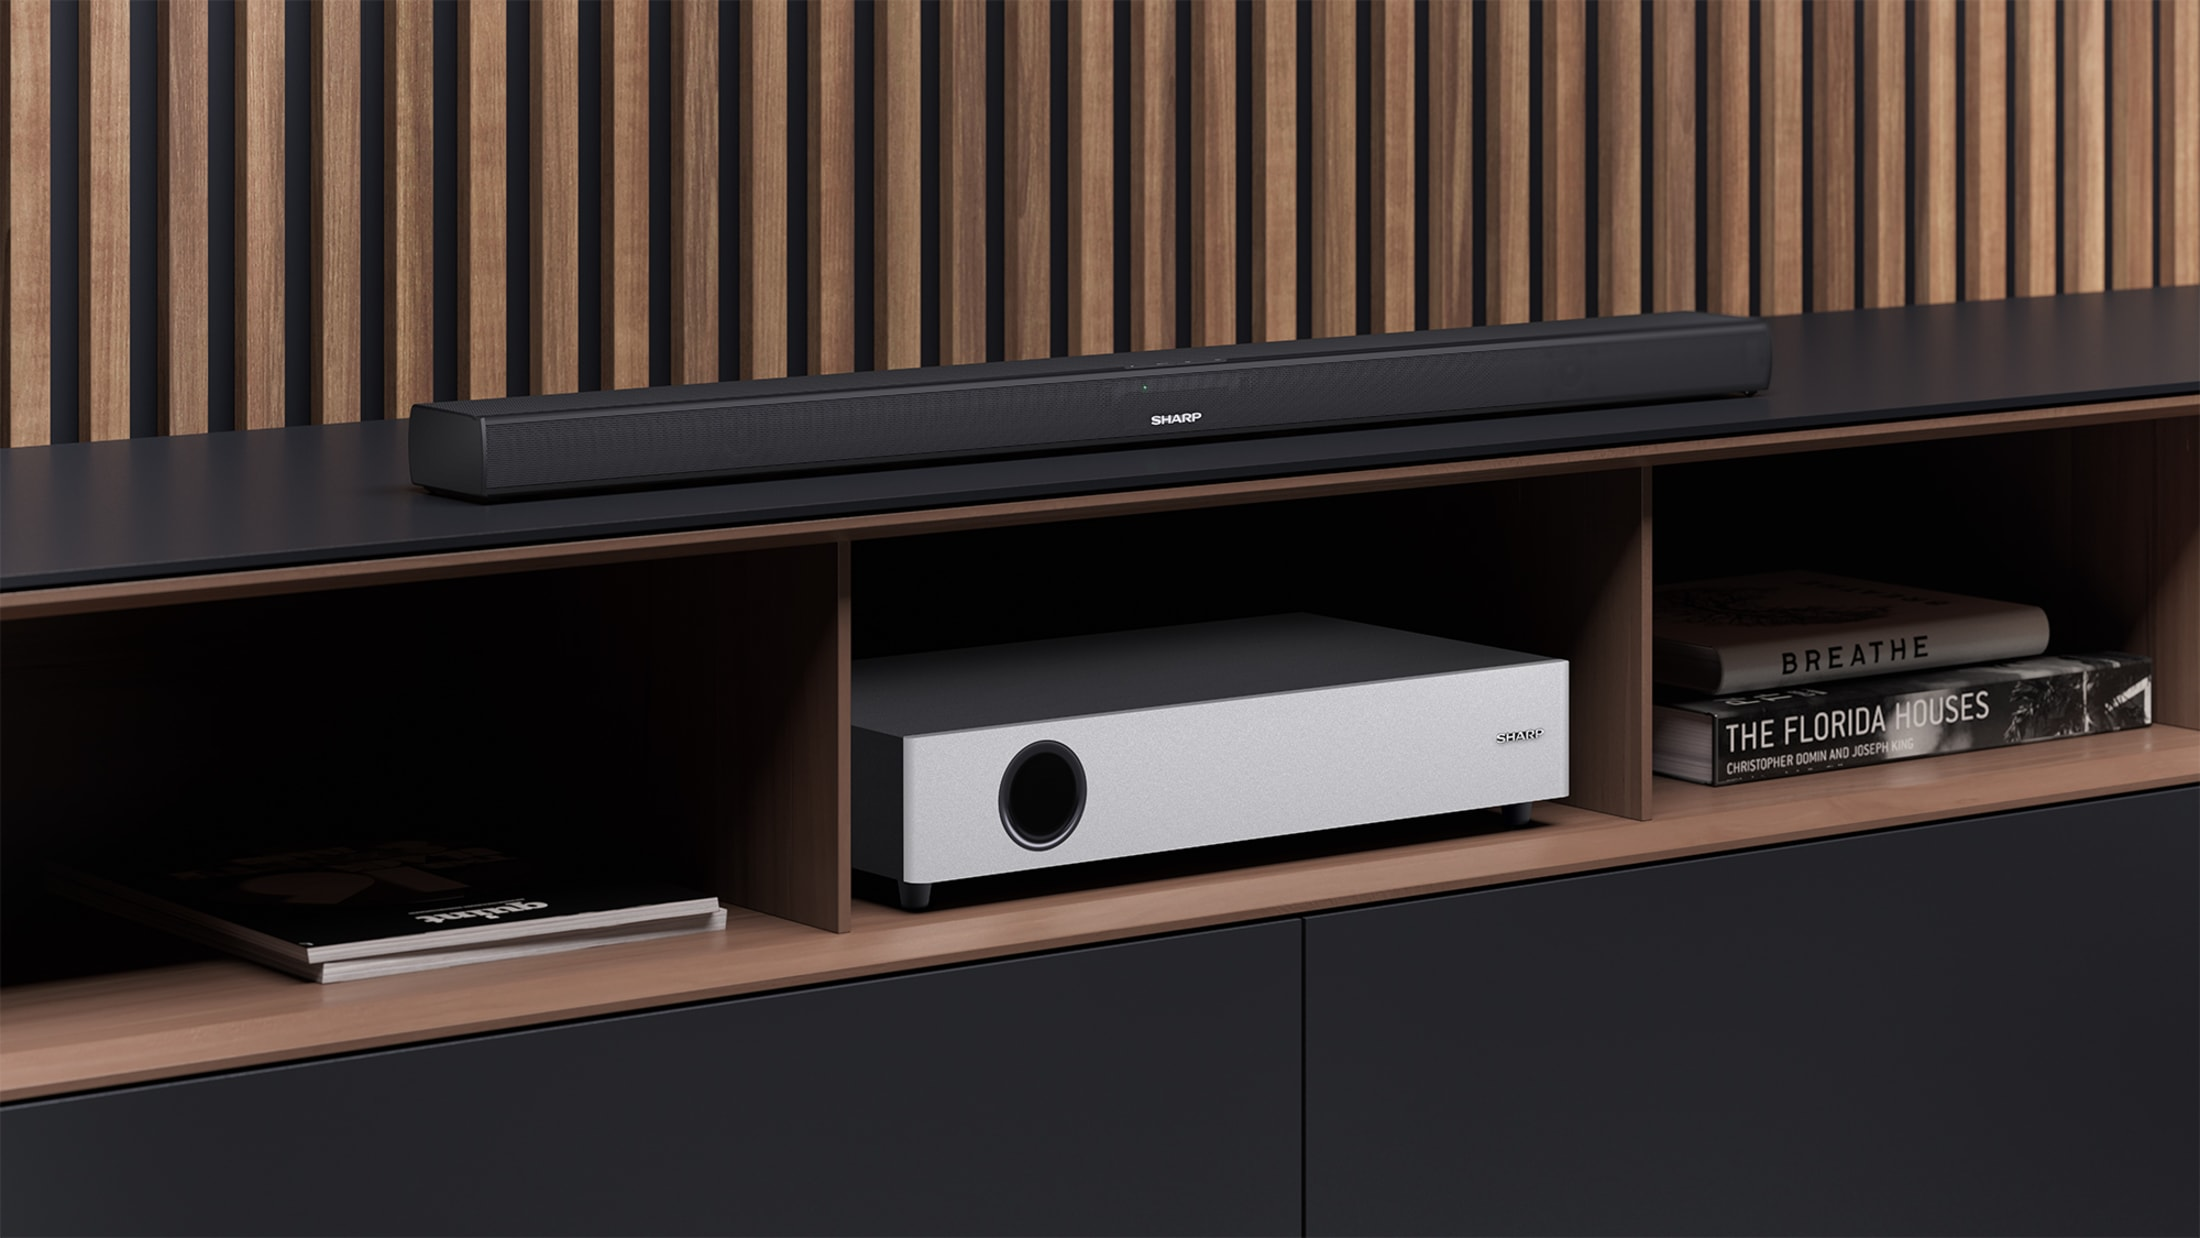 2.1 Ultra Slim Soundbar with flat wireless Subwoofer, 360 W and Bluetooth wireless music streaming. Suitable for 40 inch TV and above.